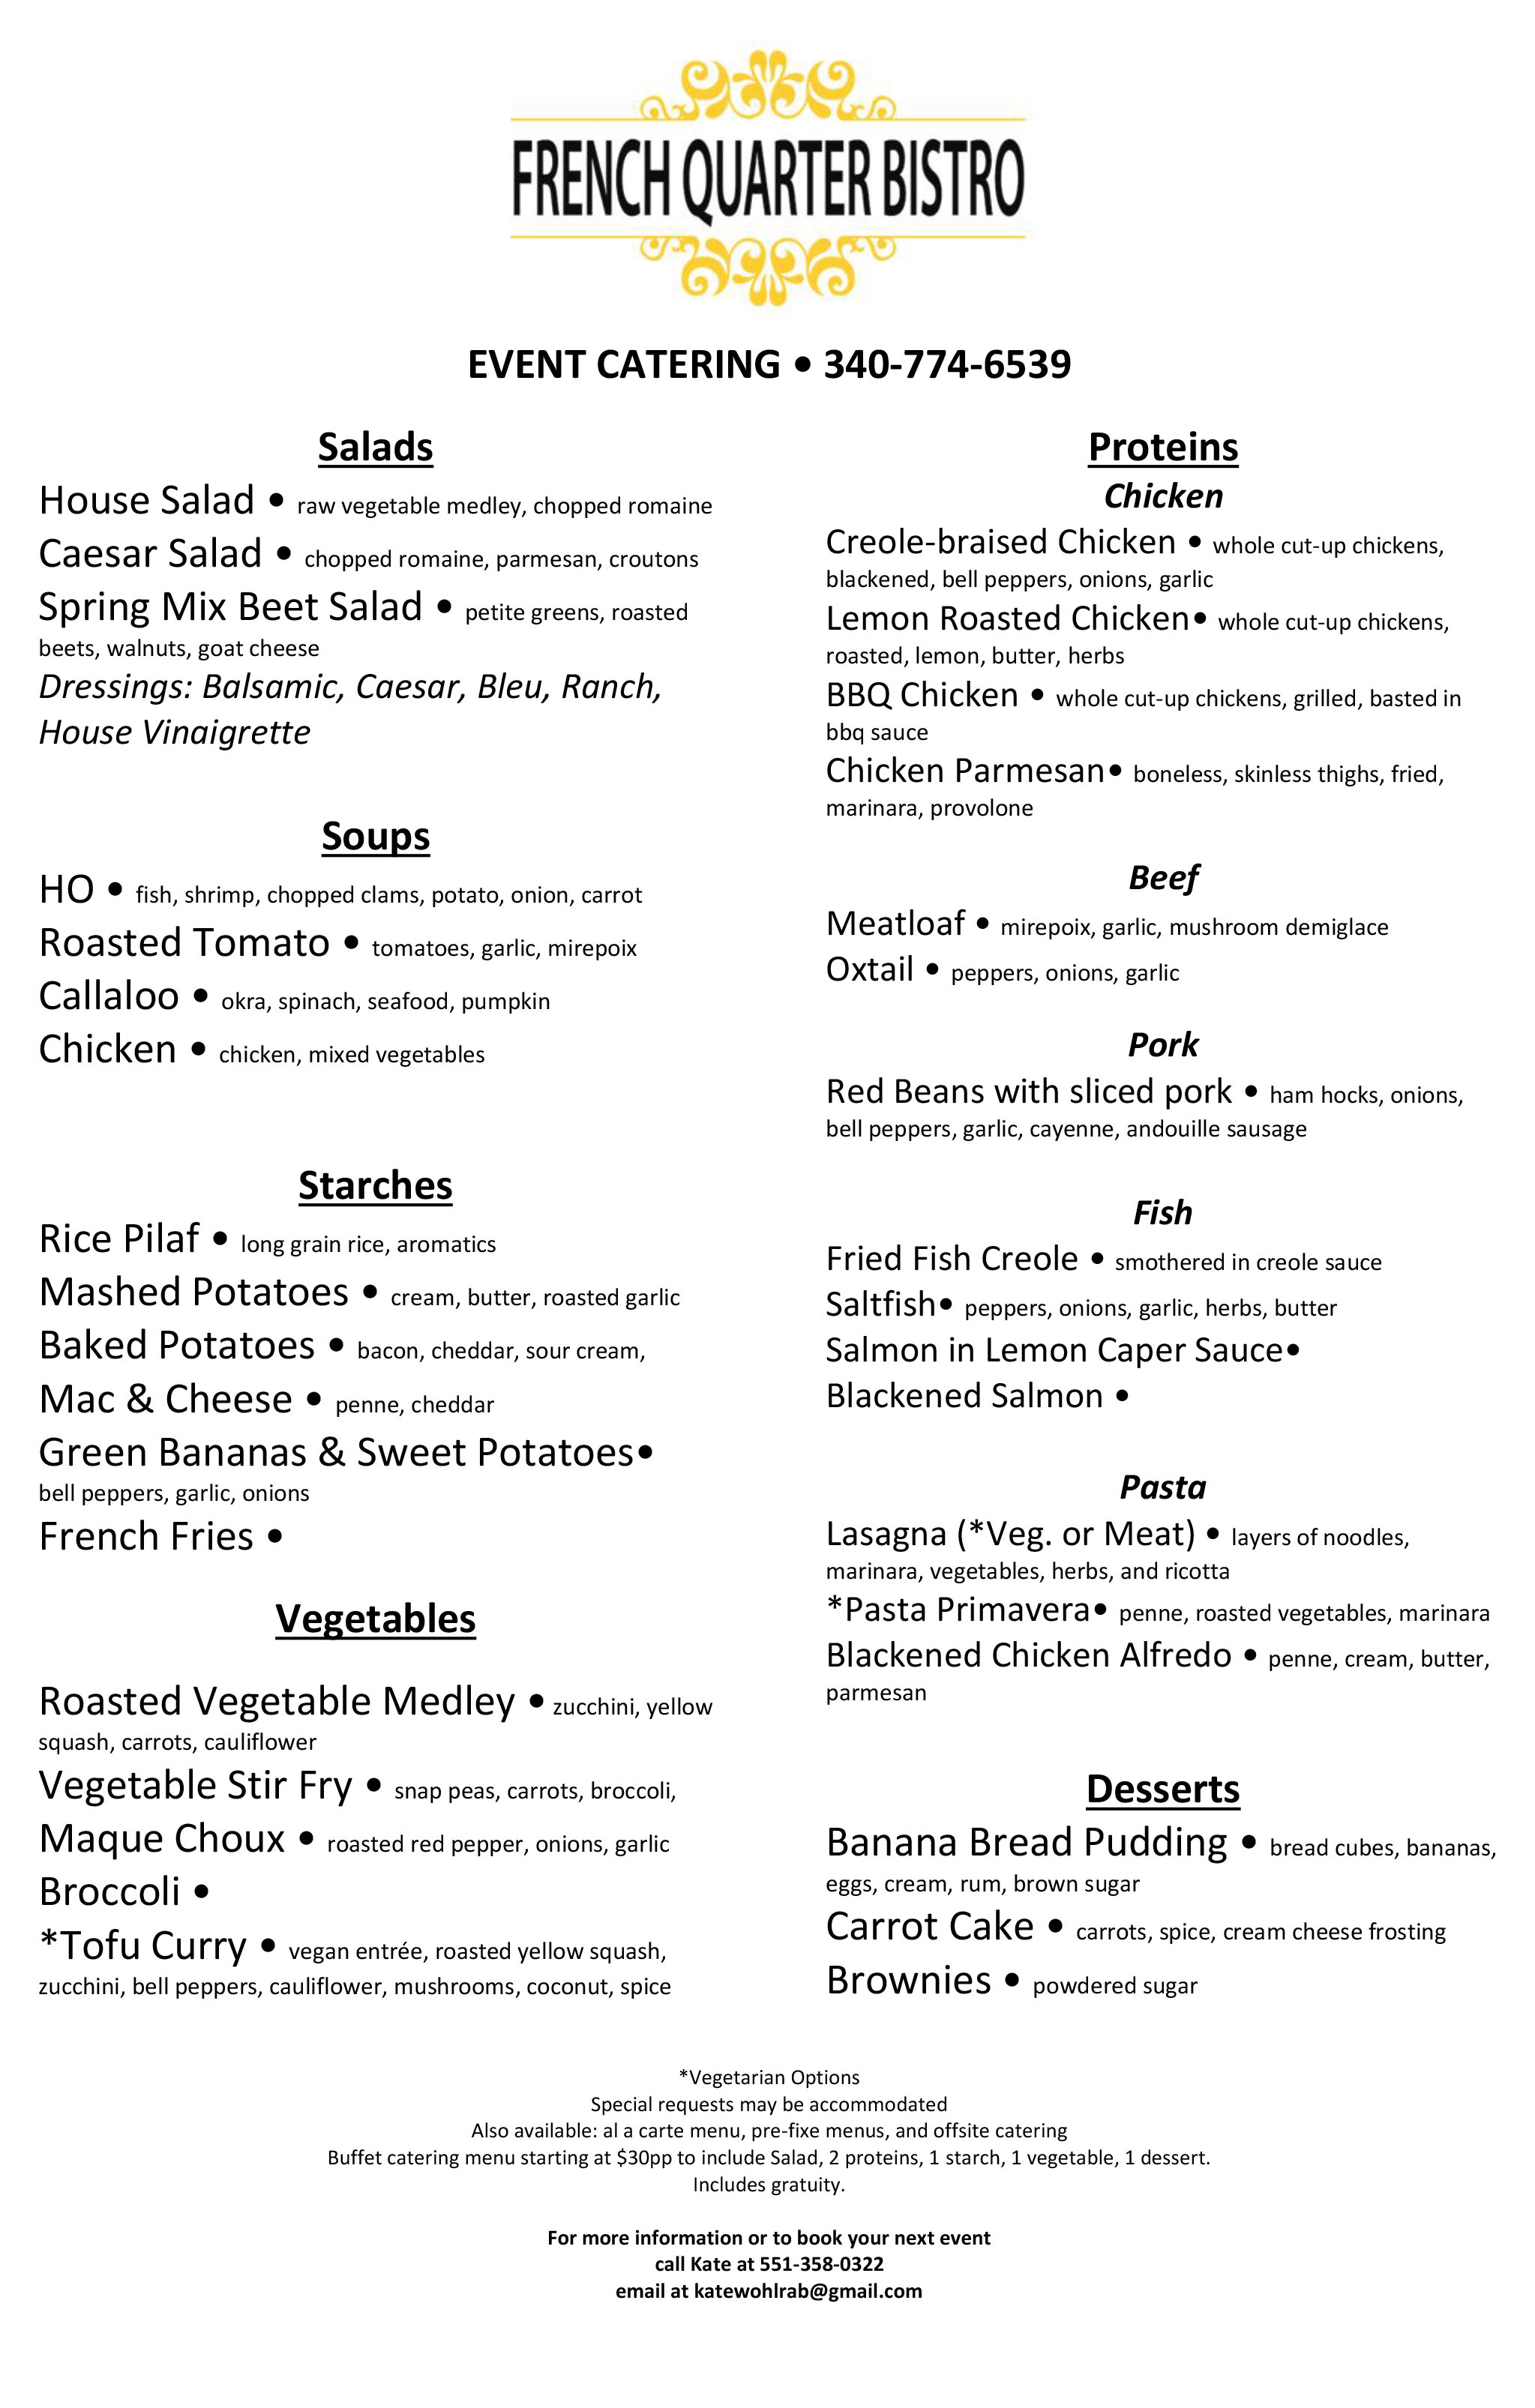 Event Catering Menu FQB.jpg